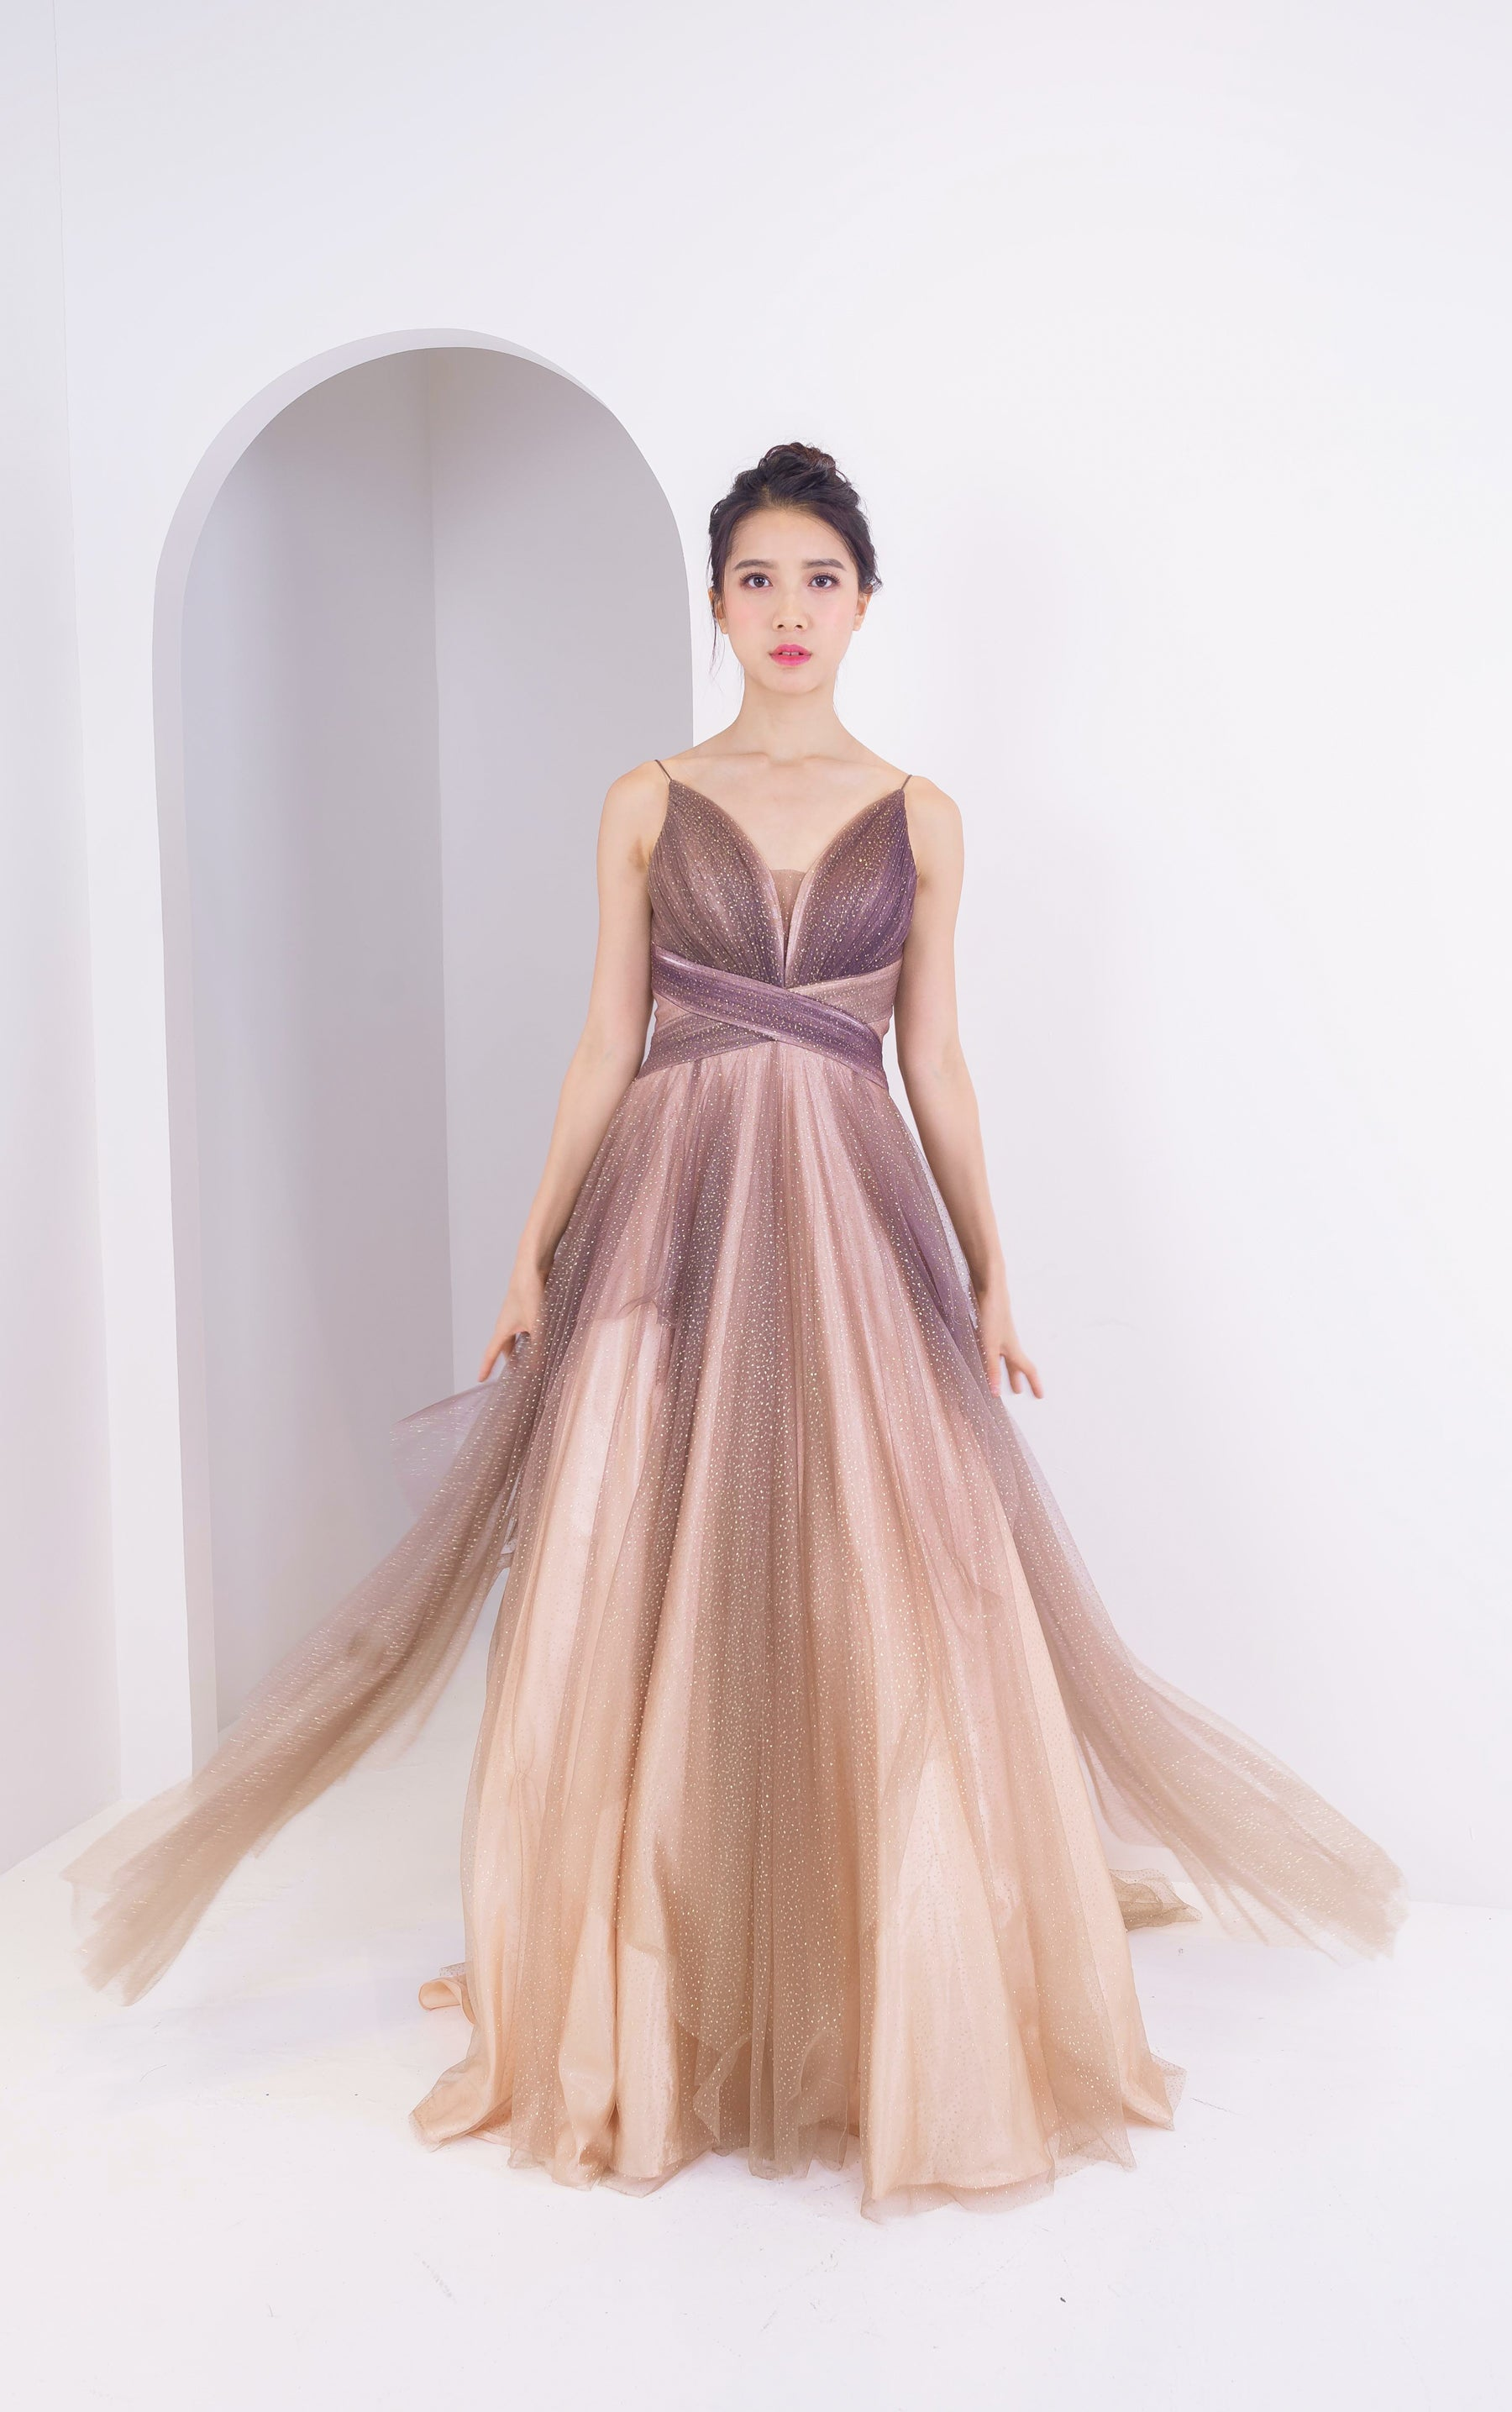 Sienna Stardust Cafe Brown Gown